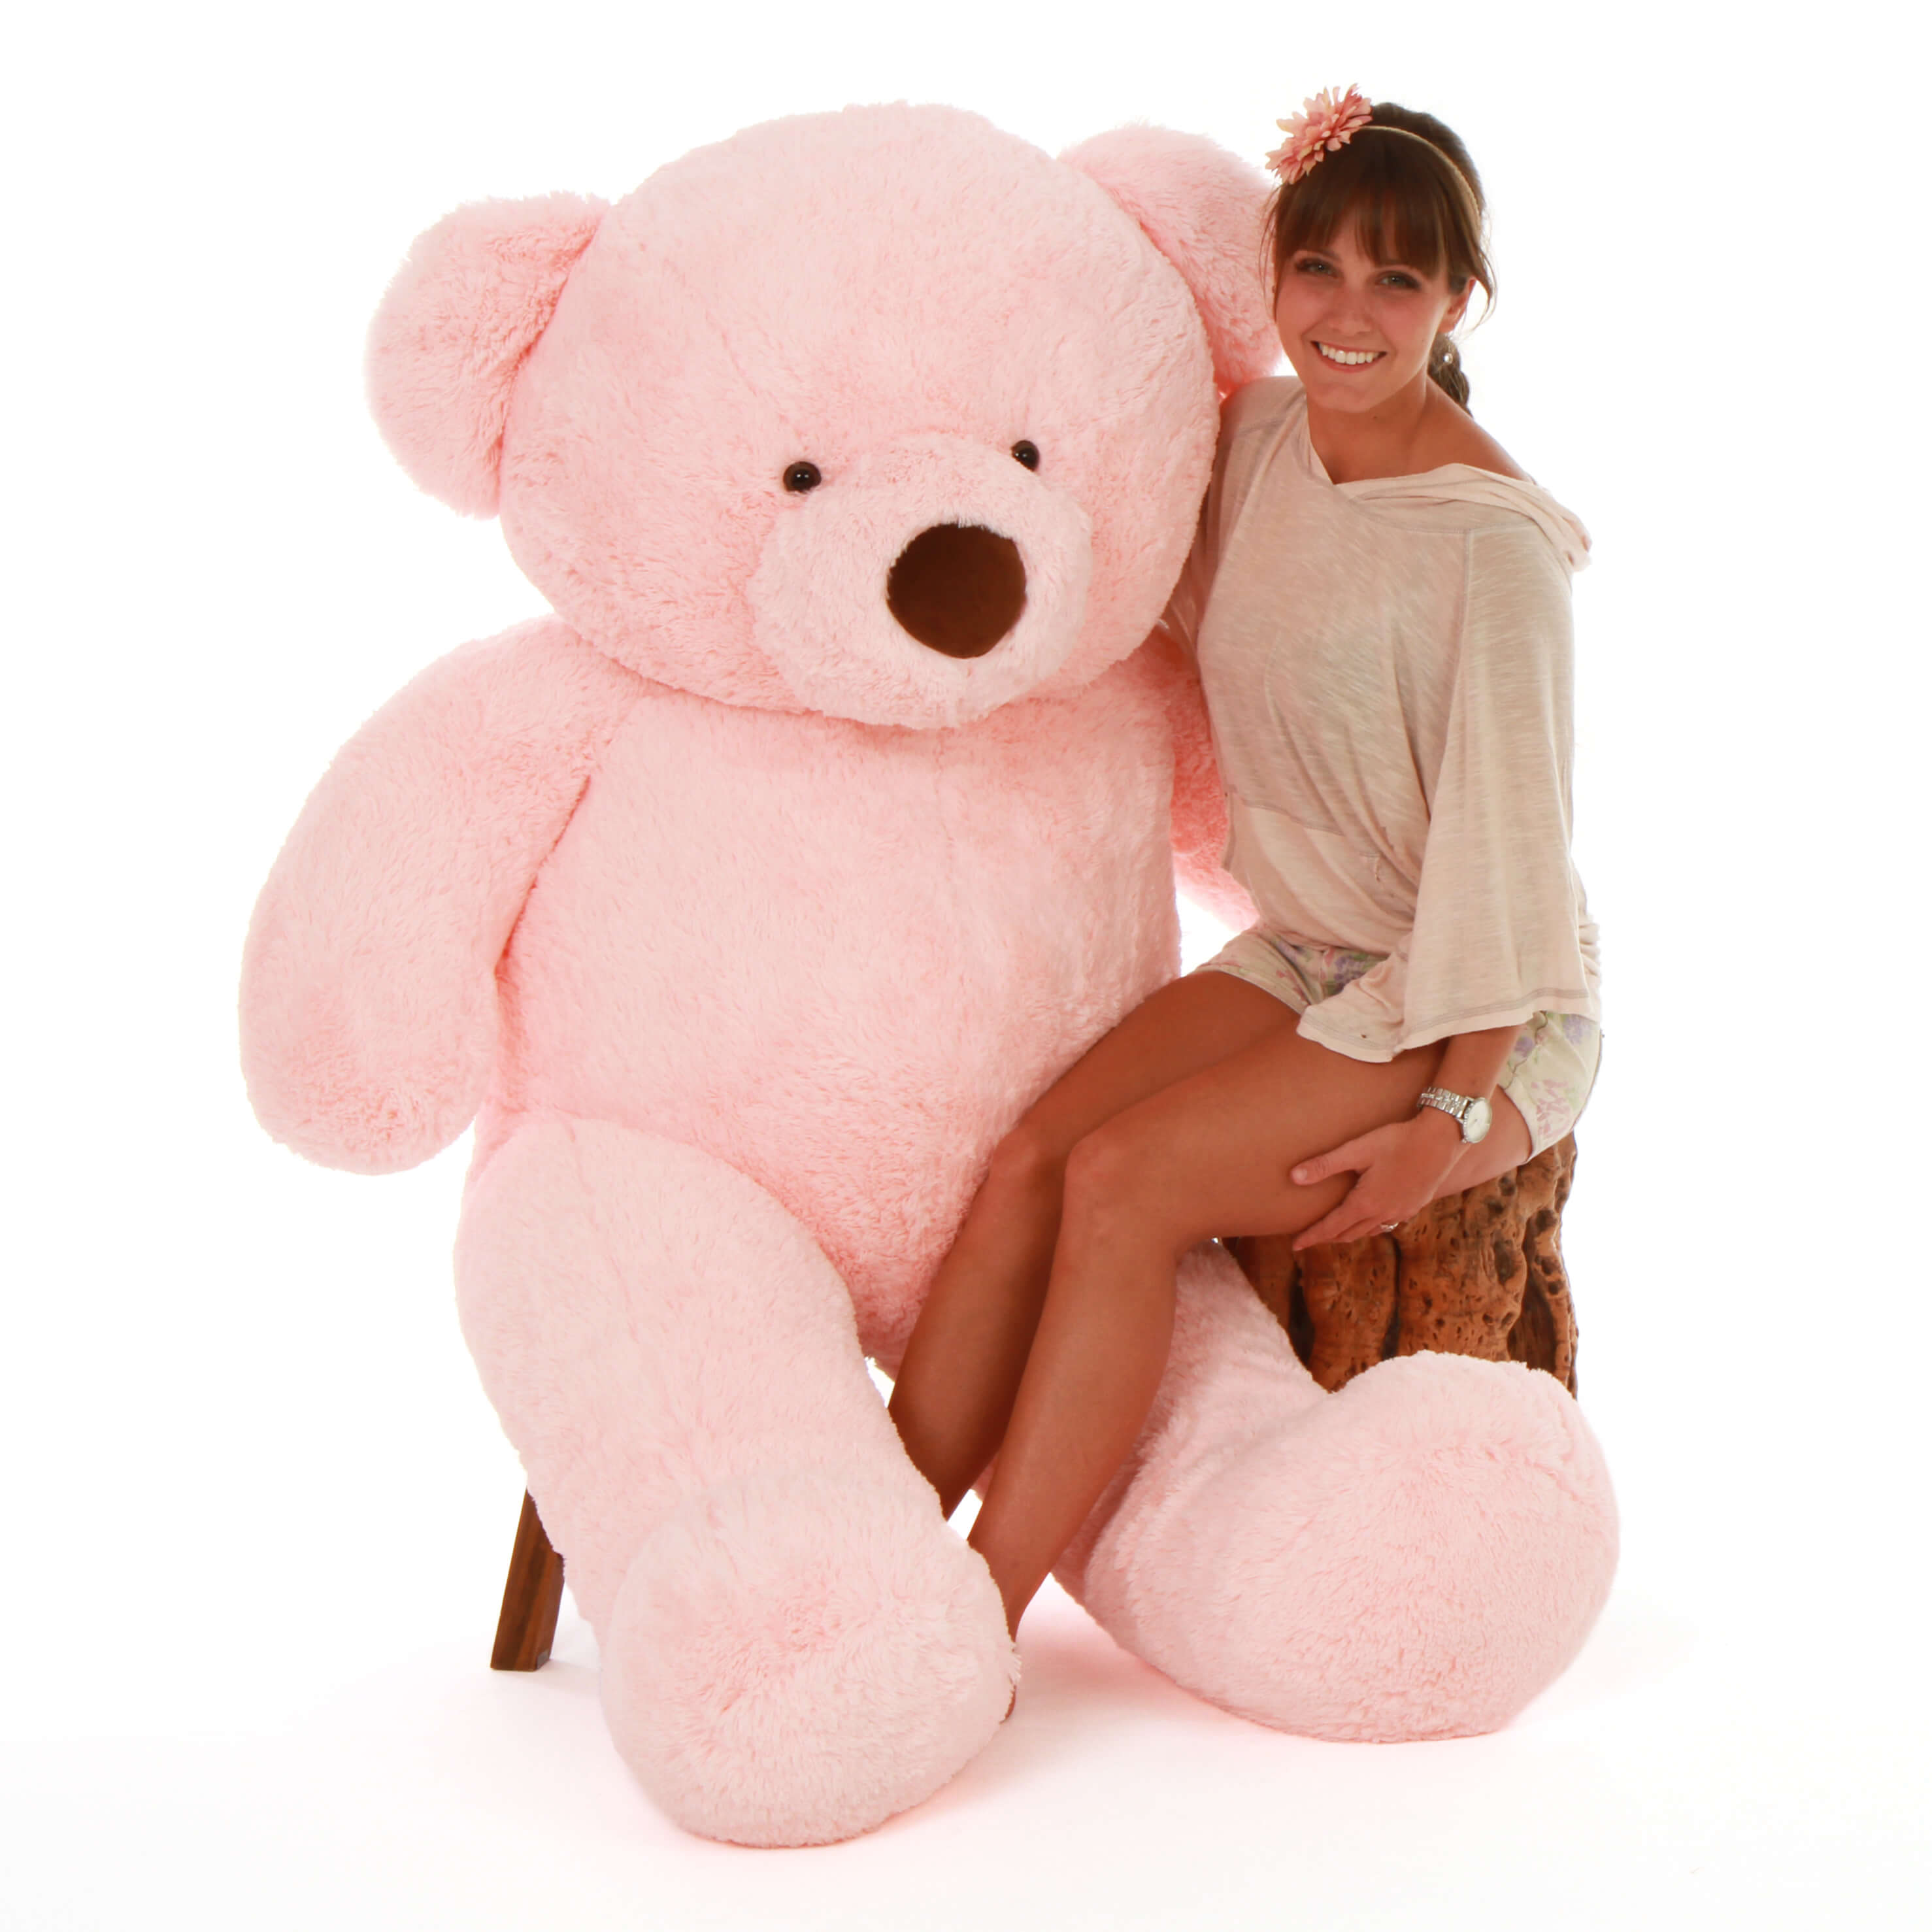 biggest-teddy-bears-you-ll-ever-see-6ft-gigi-chubs-at-giant-teddy-1.jpg